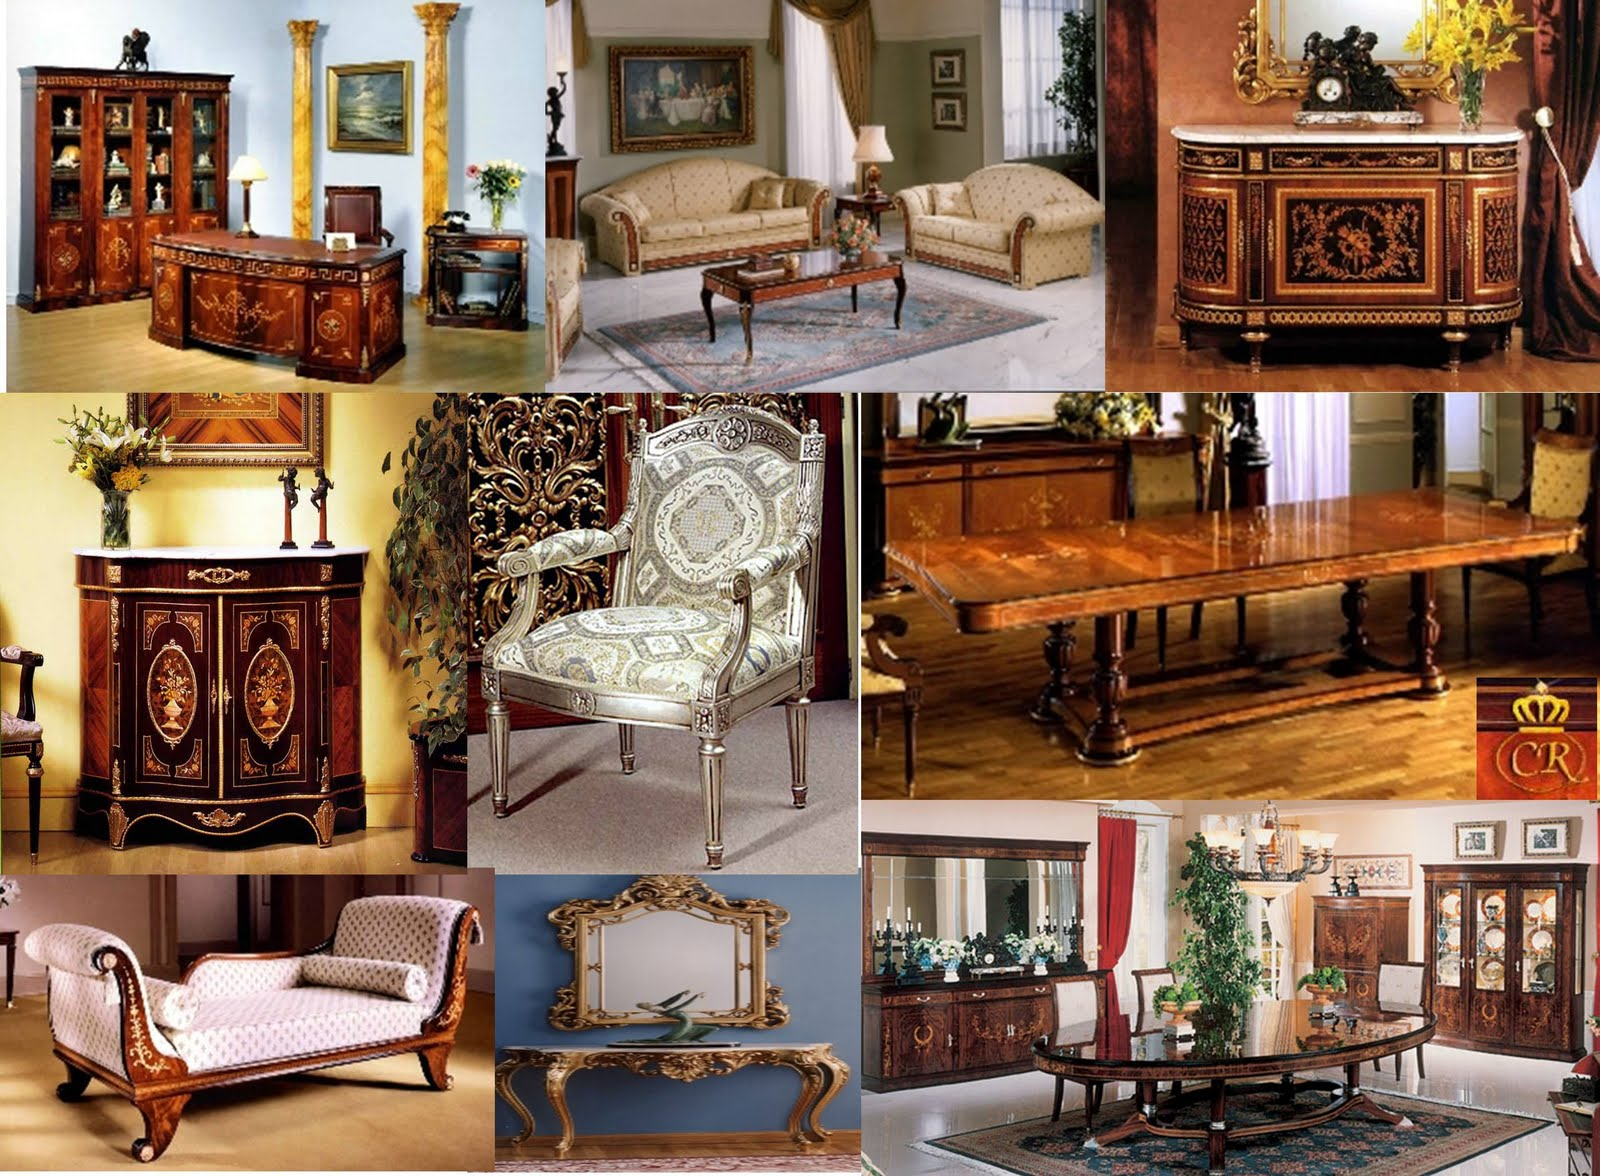 Muebles Fecama Sl - Muebles Enrique Mor N[mjhdah]http://www.instantbedandbreakfast.com/services/reservation/display_pic.php?im=bus-19069.jpg&pth=http%3A%2F%2Fwww.bedbreakfastreservations.com%2Fimg%2Fdef%2Findx%2F&w=1104&h=829&req_w=1104&qu=85&crophr=1.10